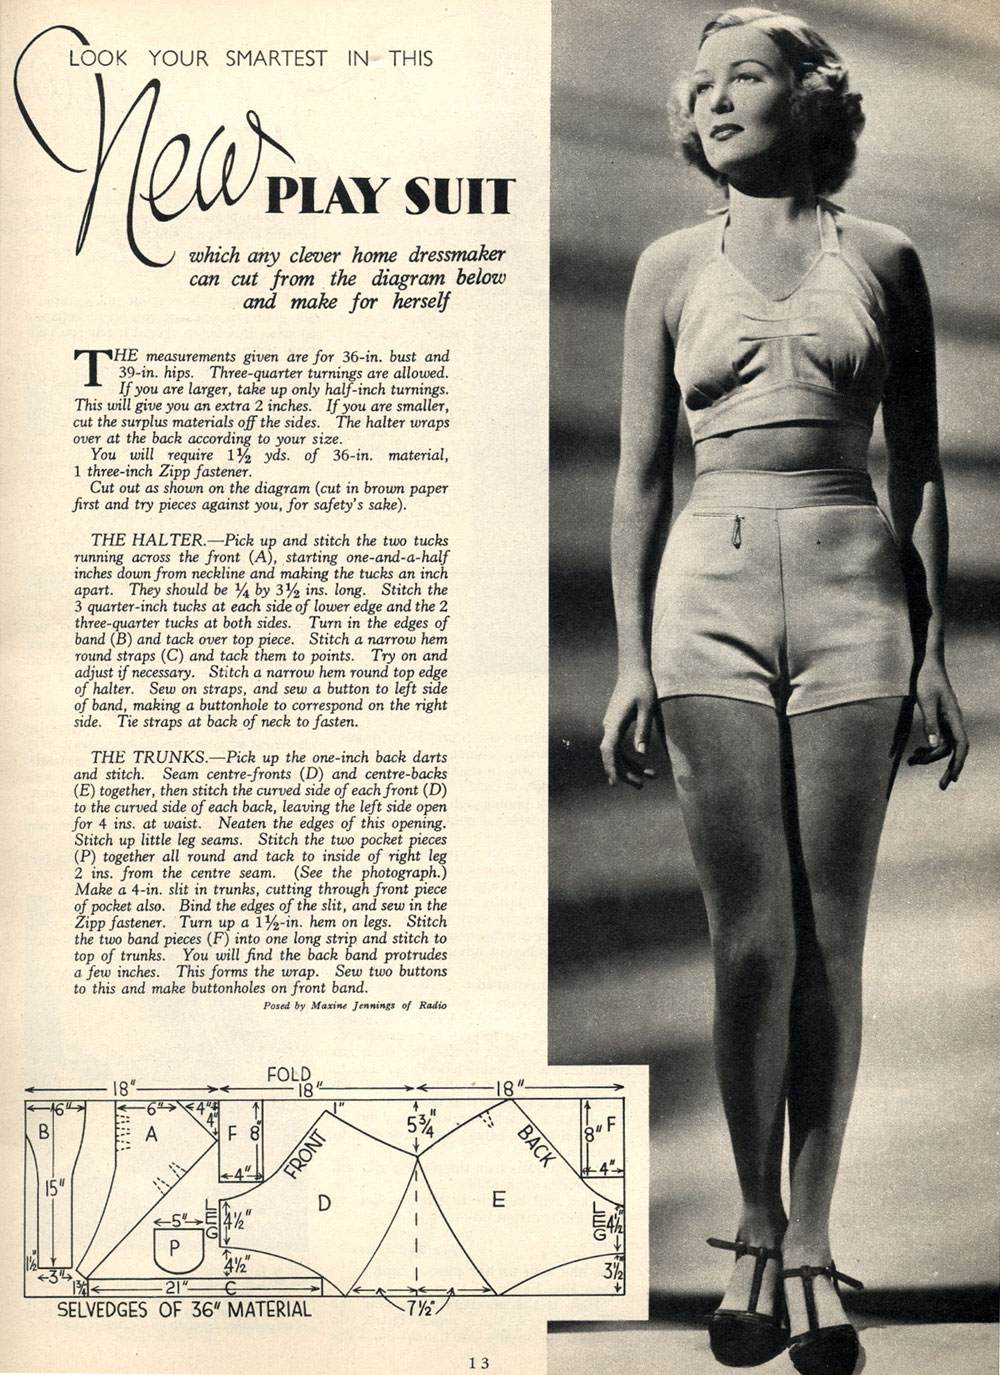 1930s Beach Playsuit